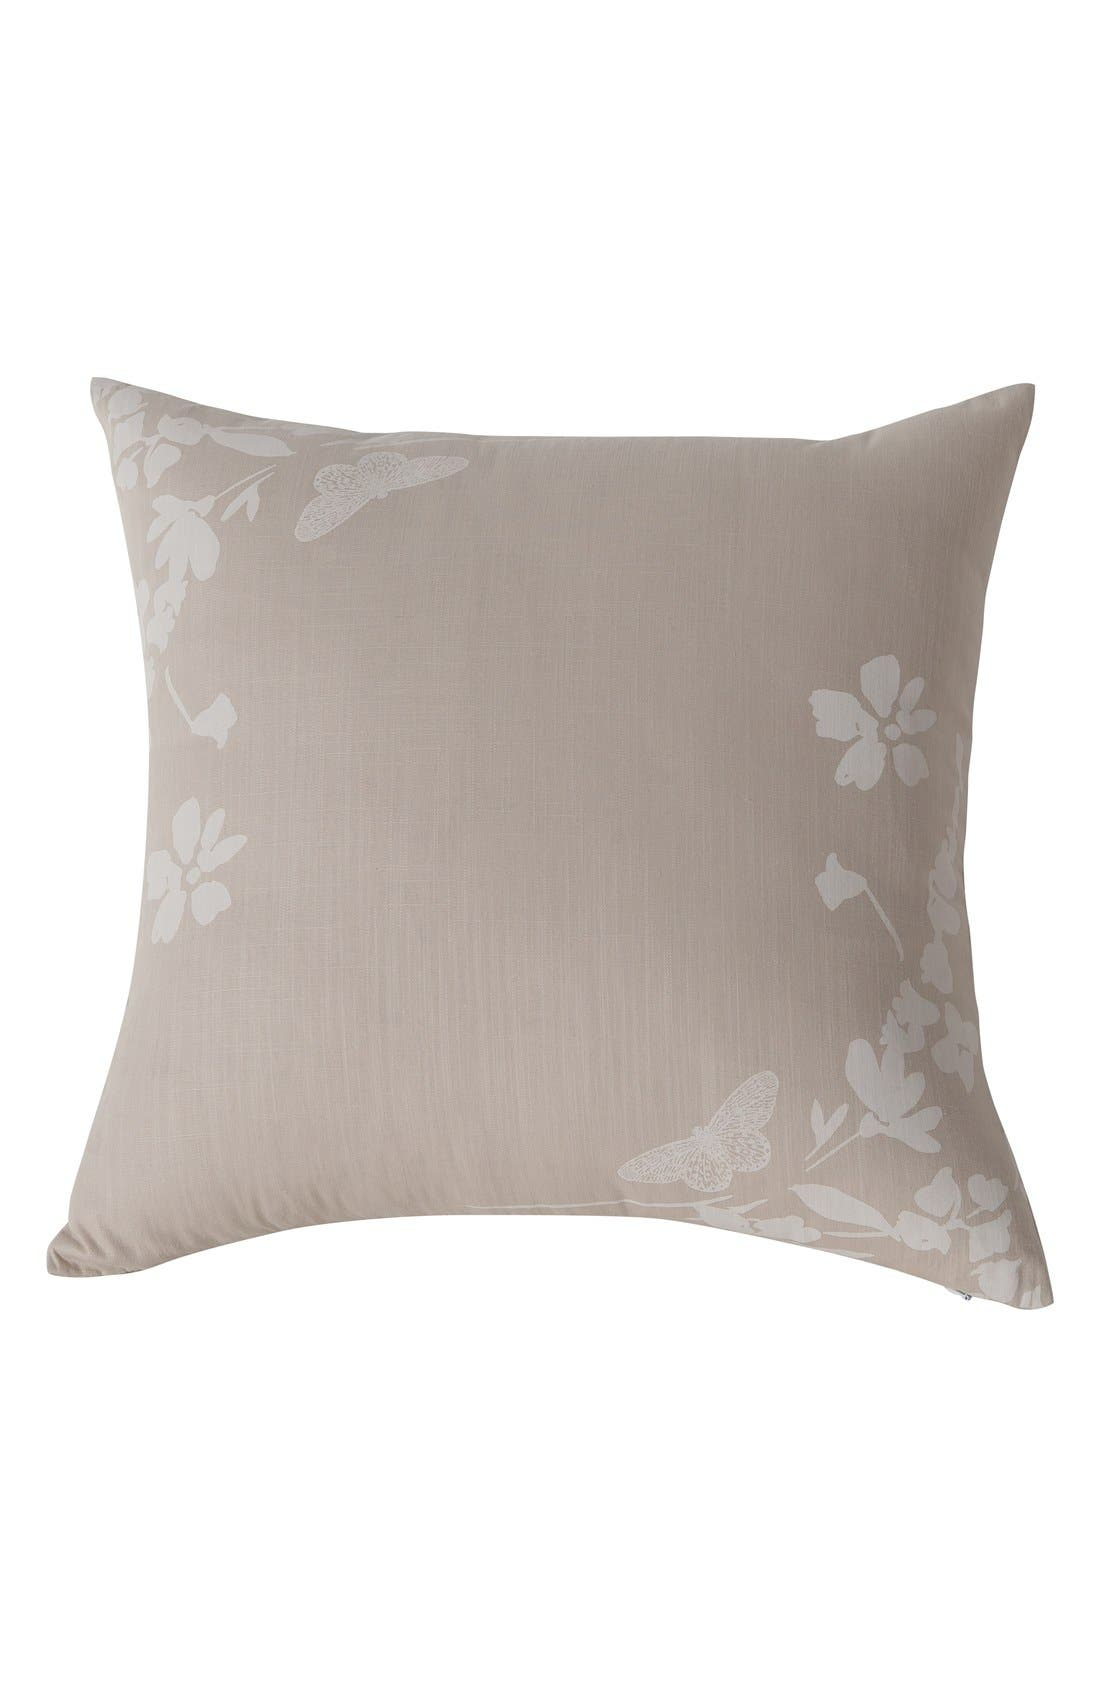 'Laramie' Accent Pillow,                             Main thumbnail 1, color,                             250